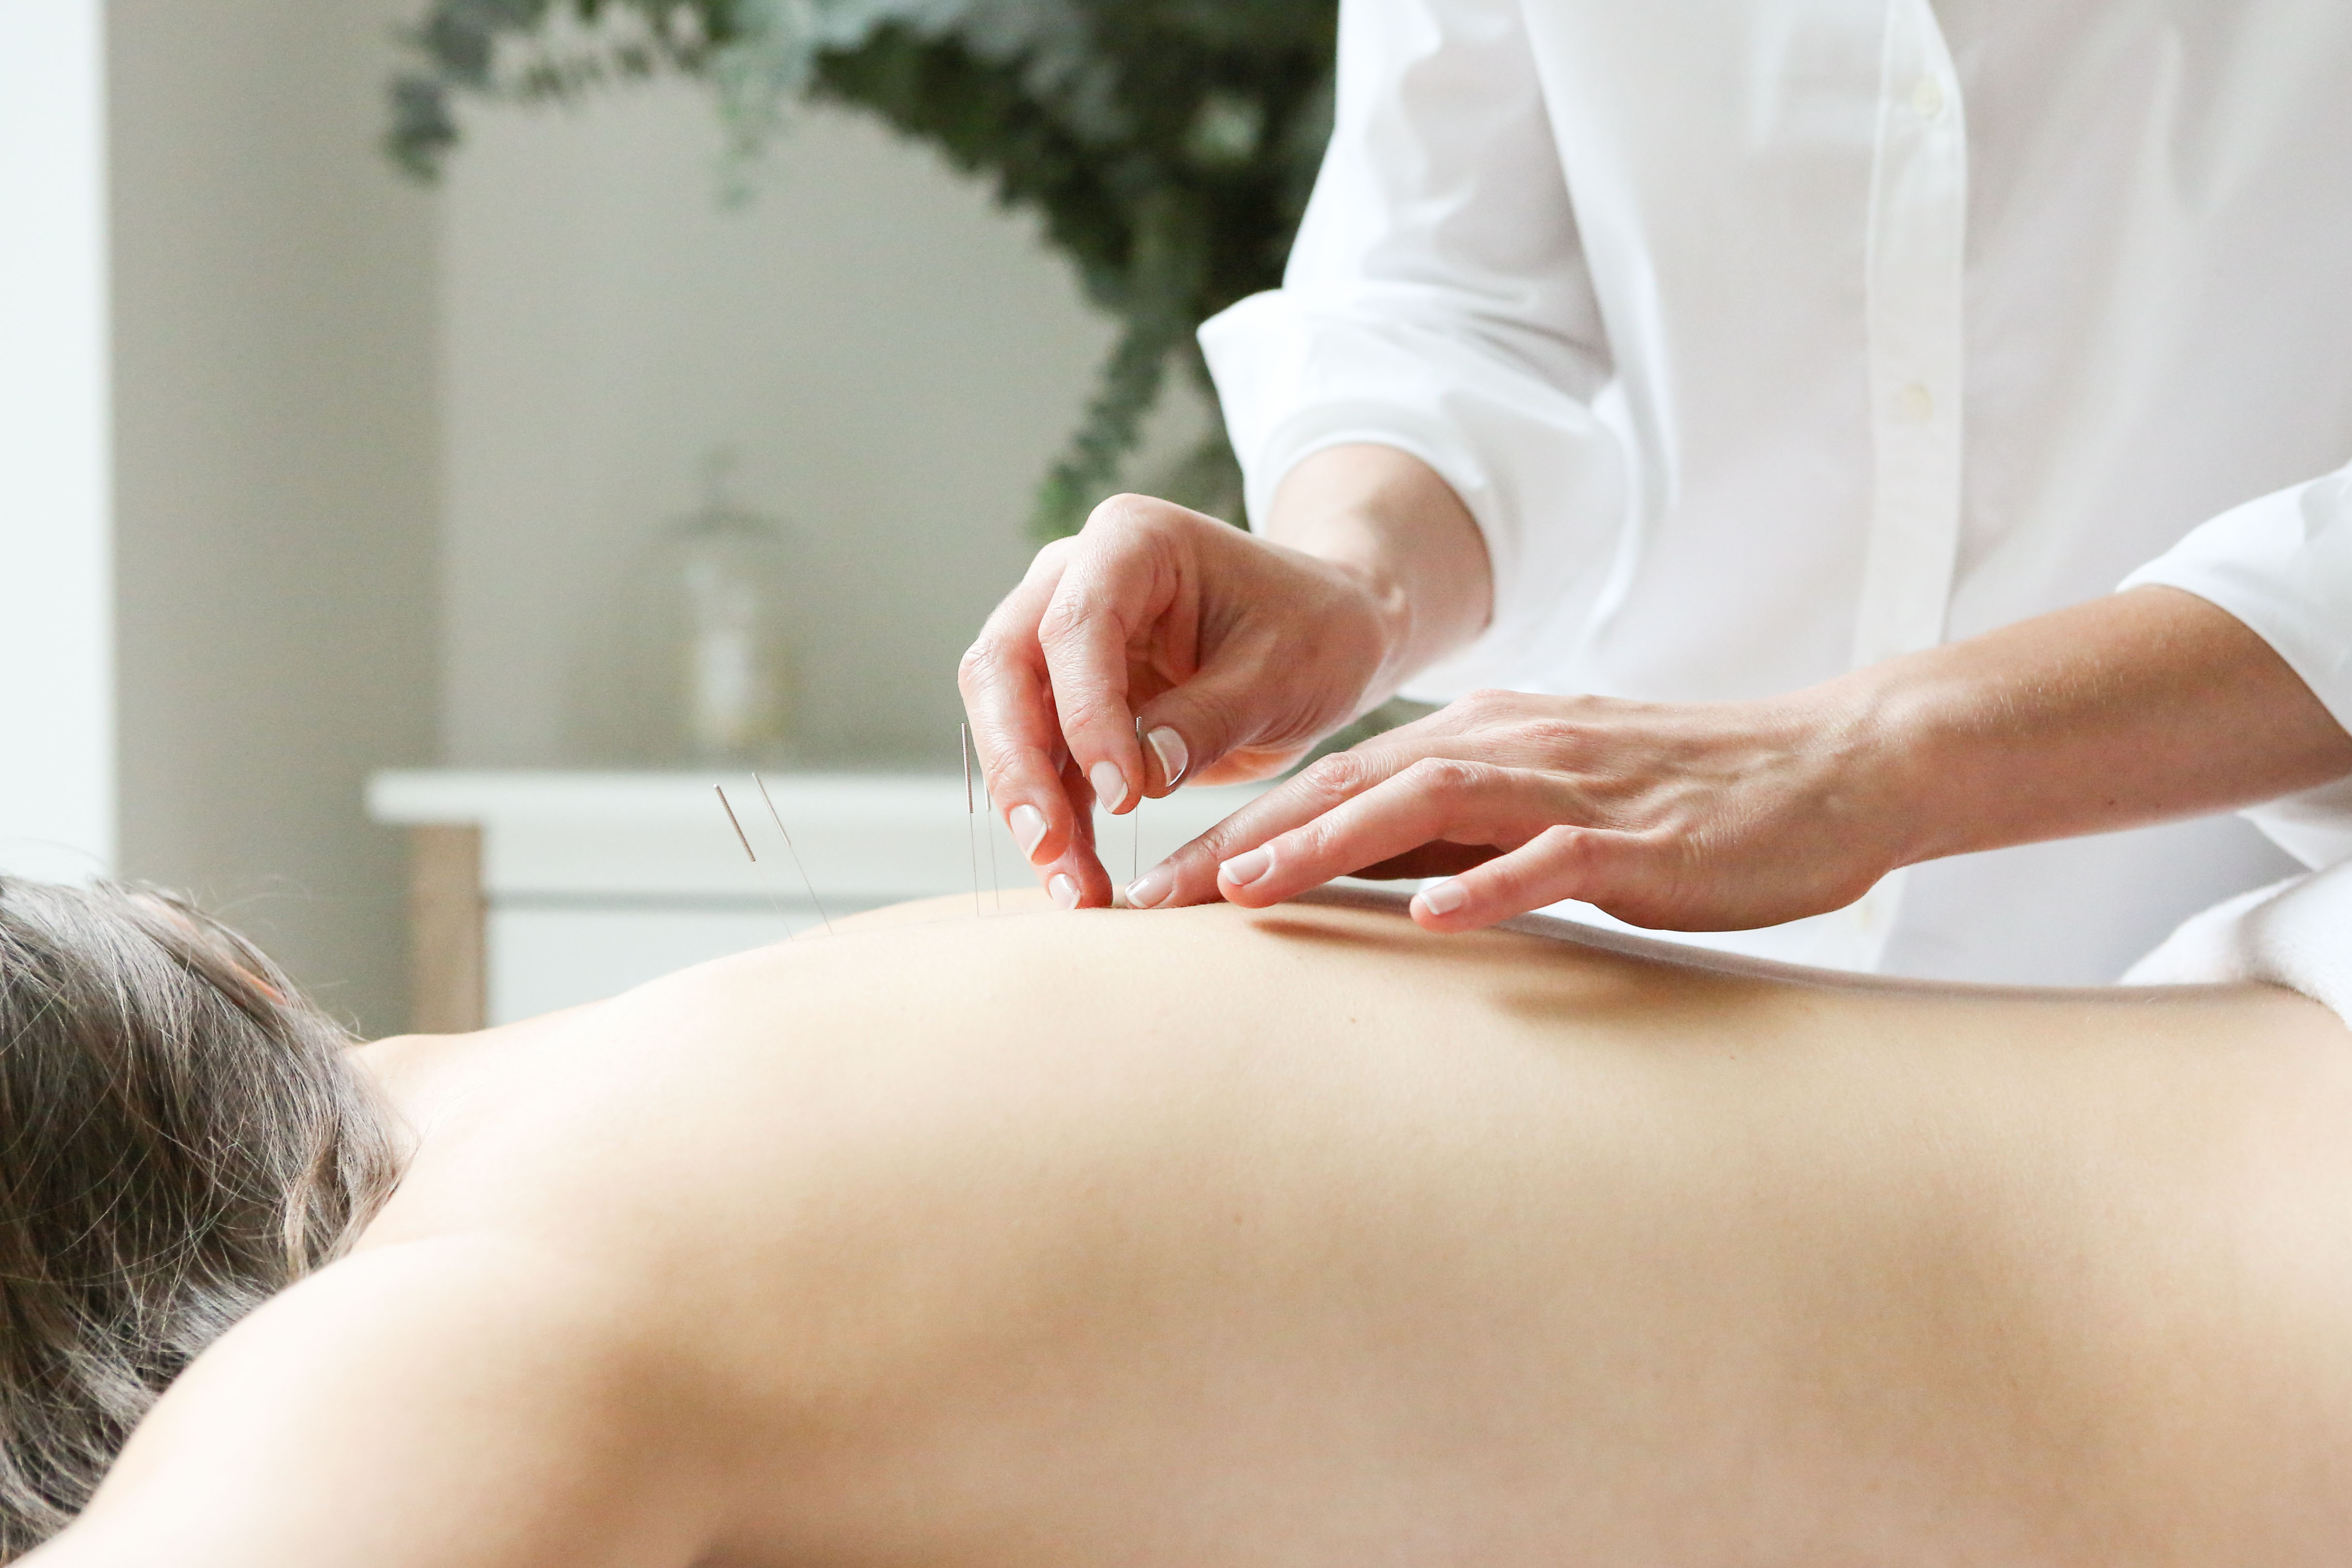 treatment rooms website acupuncture website business start up photos